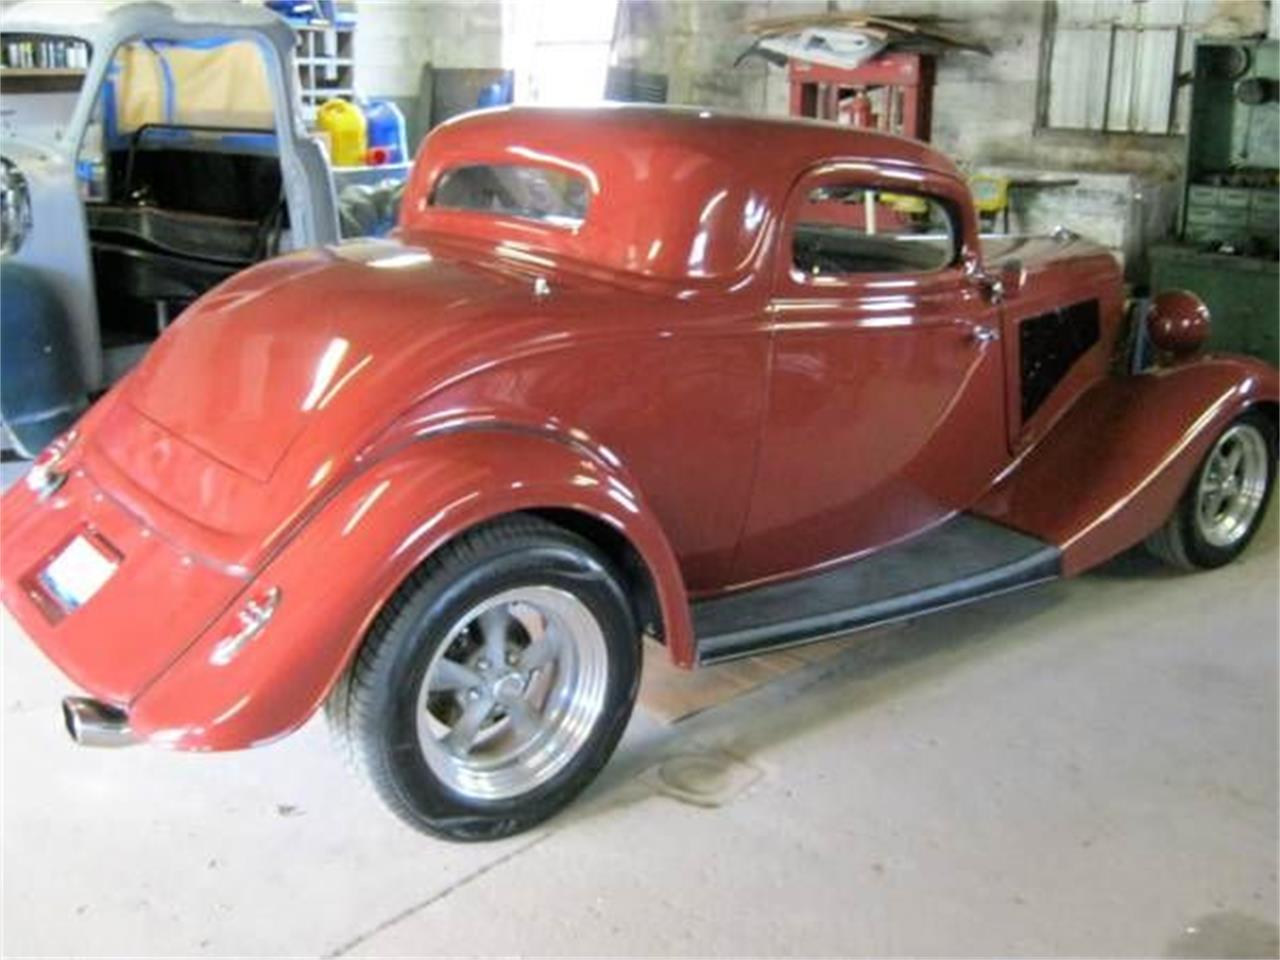 1934 Ford Coupe for sale in Cadillac, MI – photo 2